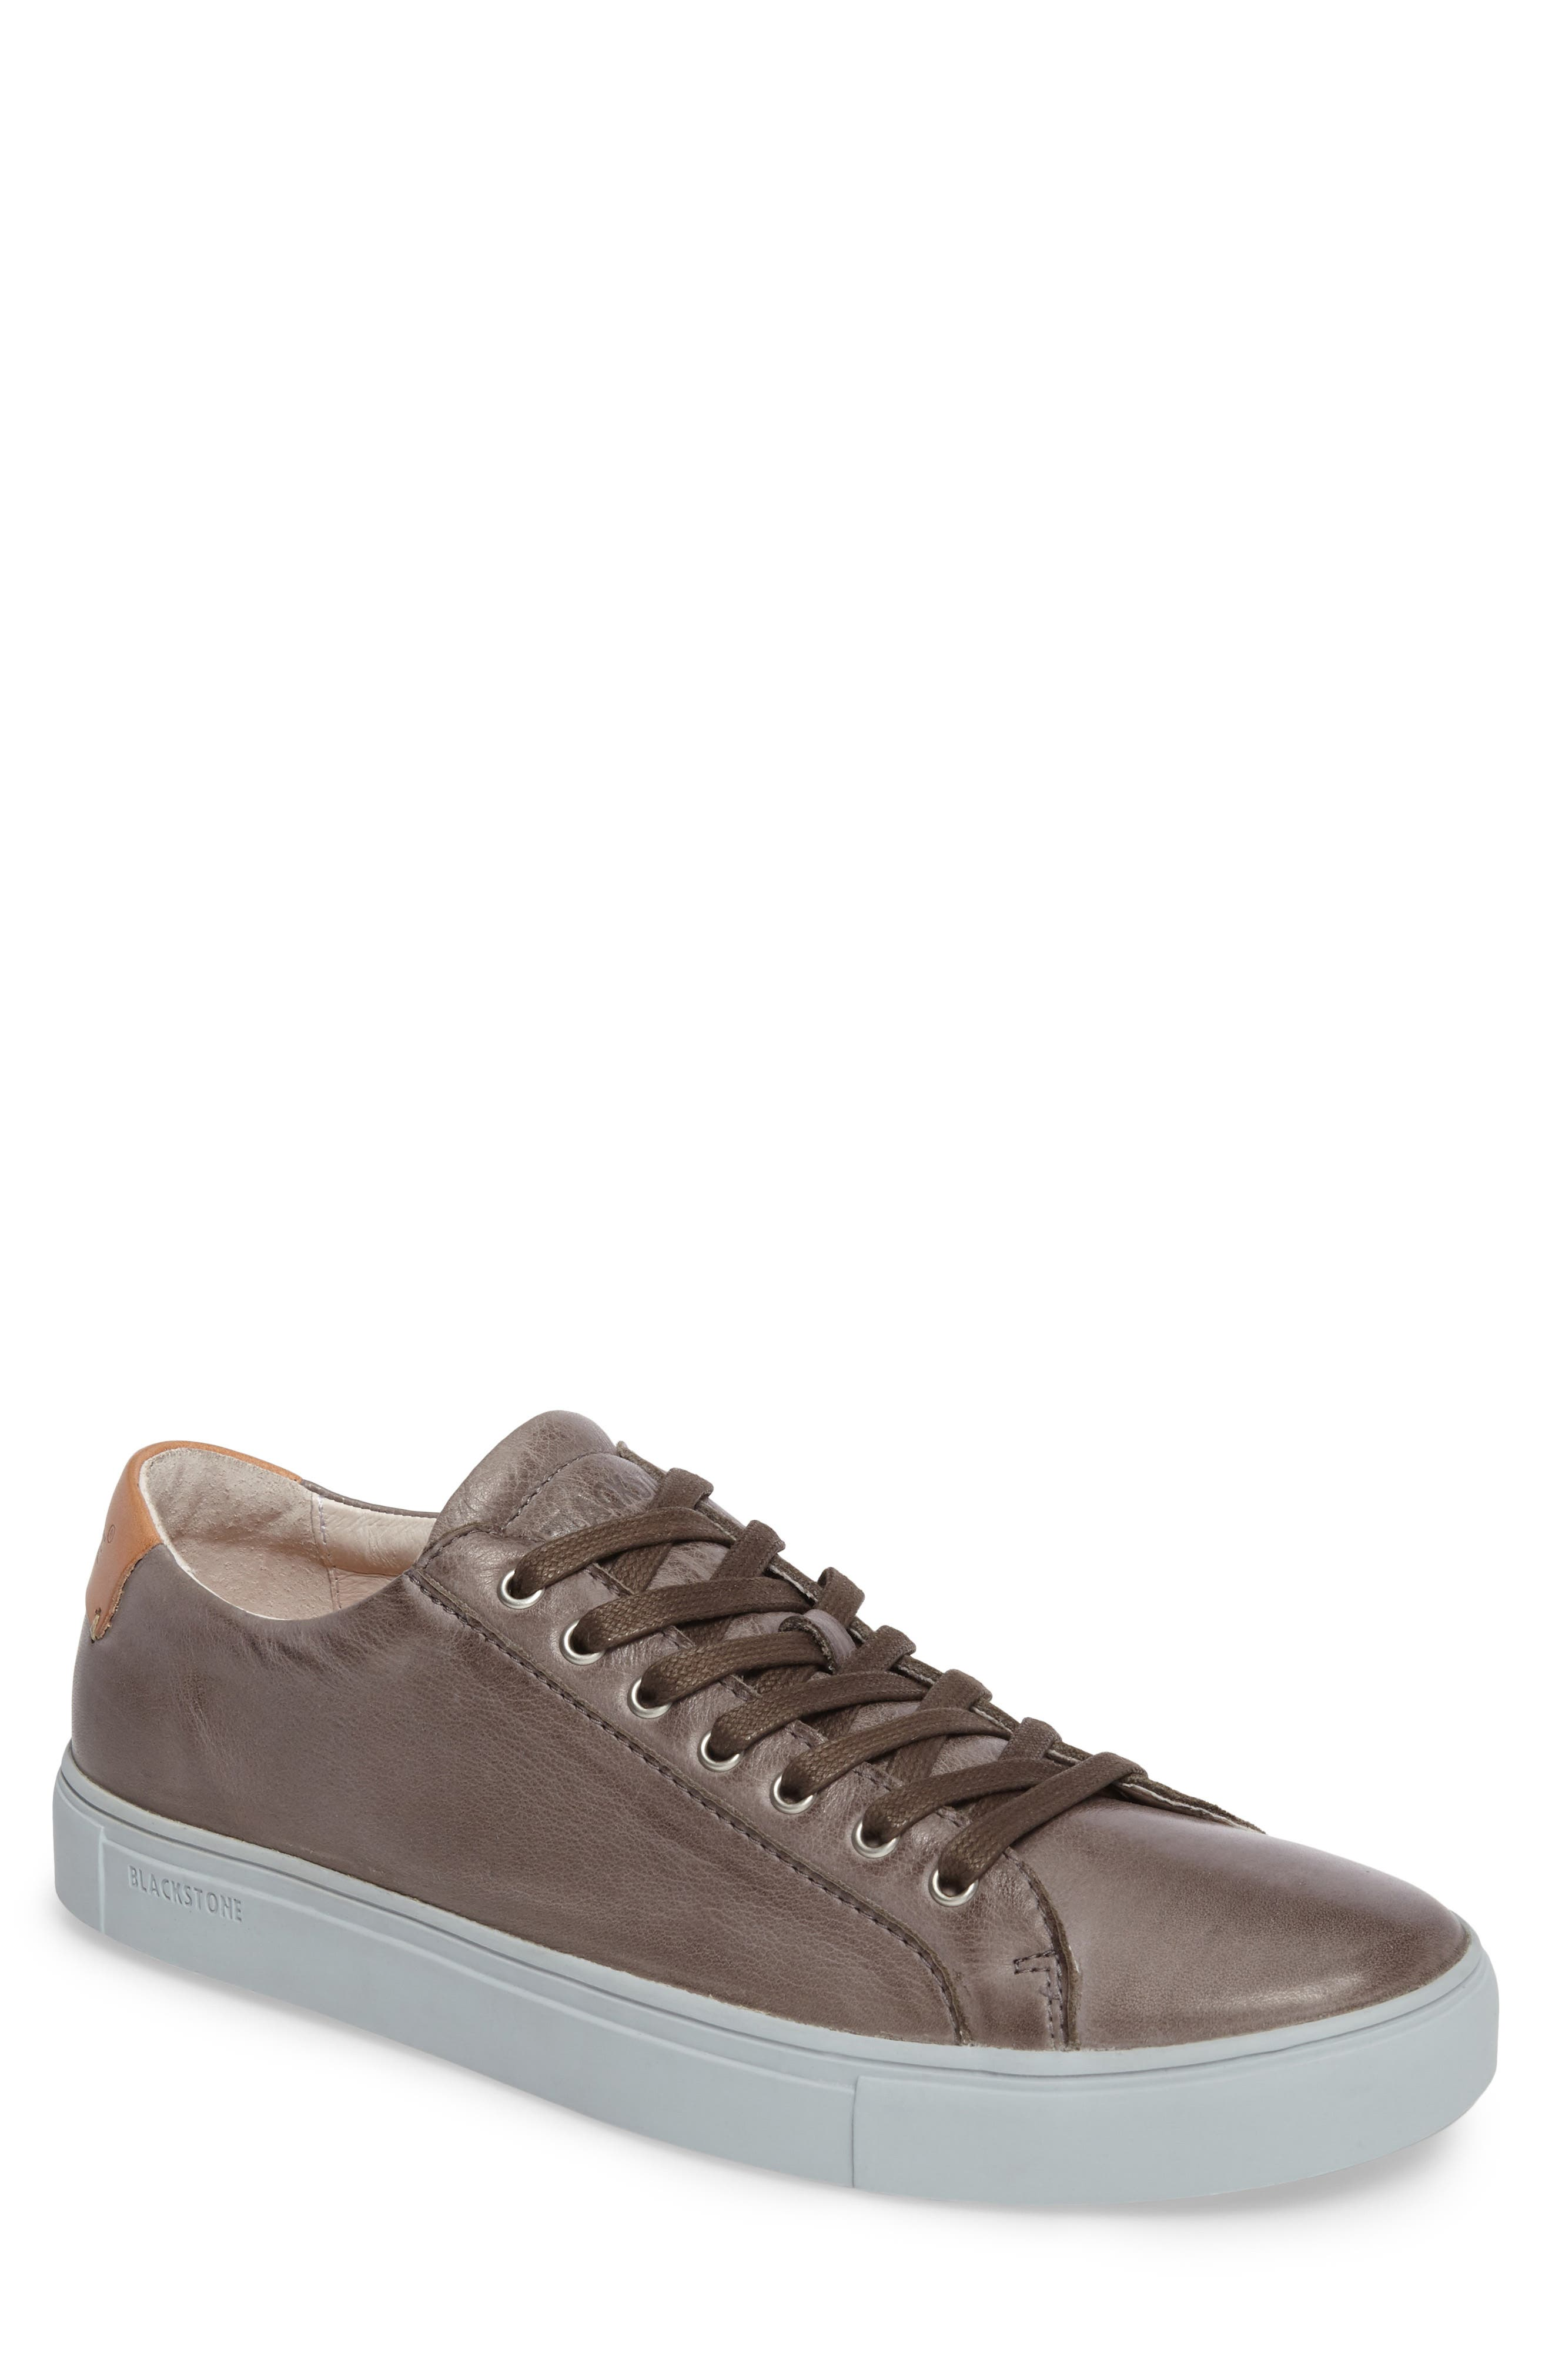 NM01 7 Eyelet Sneaker,                         Main,                         color, Charcoal Leather